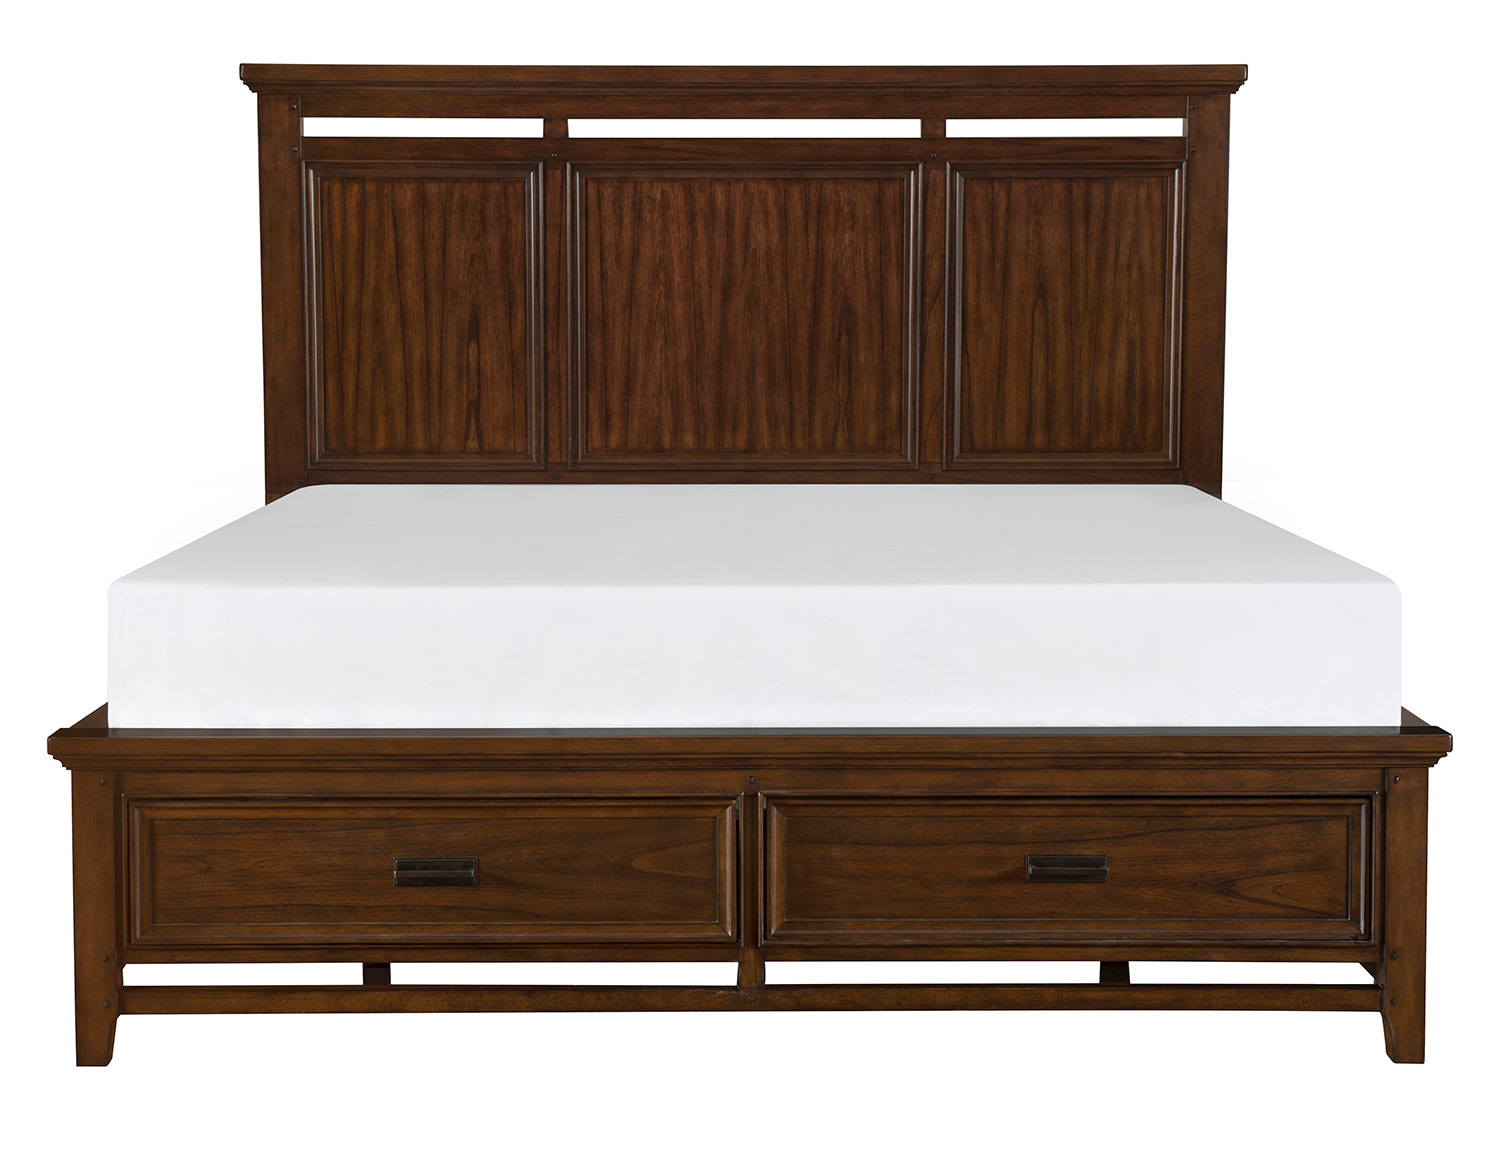 Homelegance Frazier Park Bed - Brown Cherry